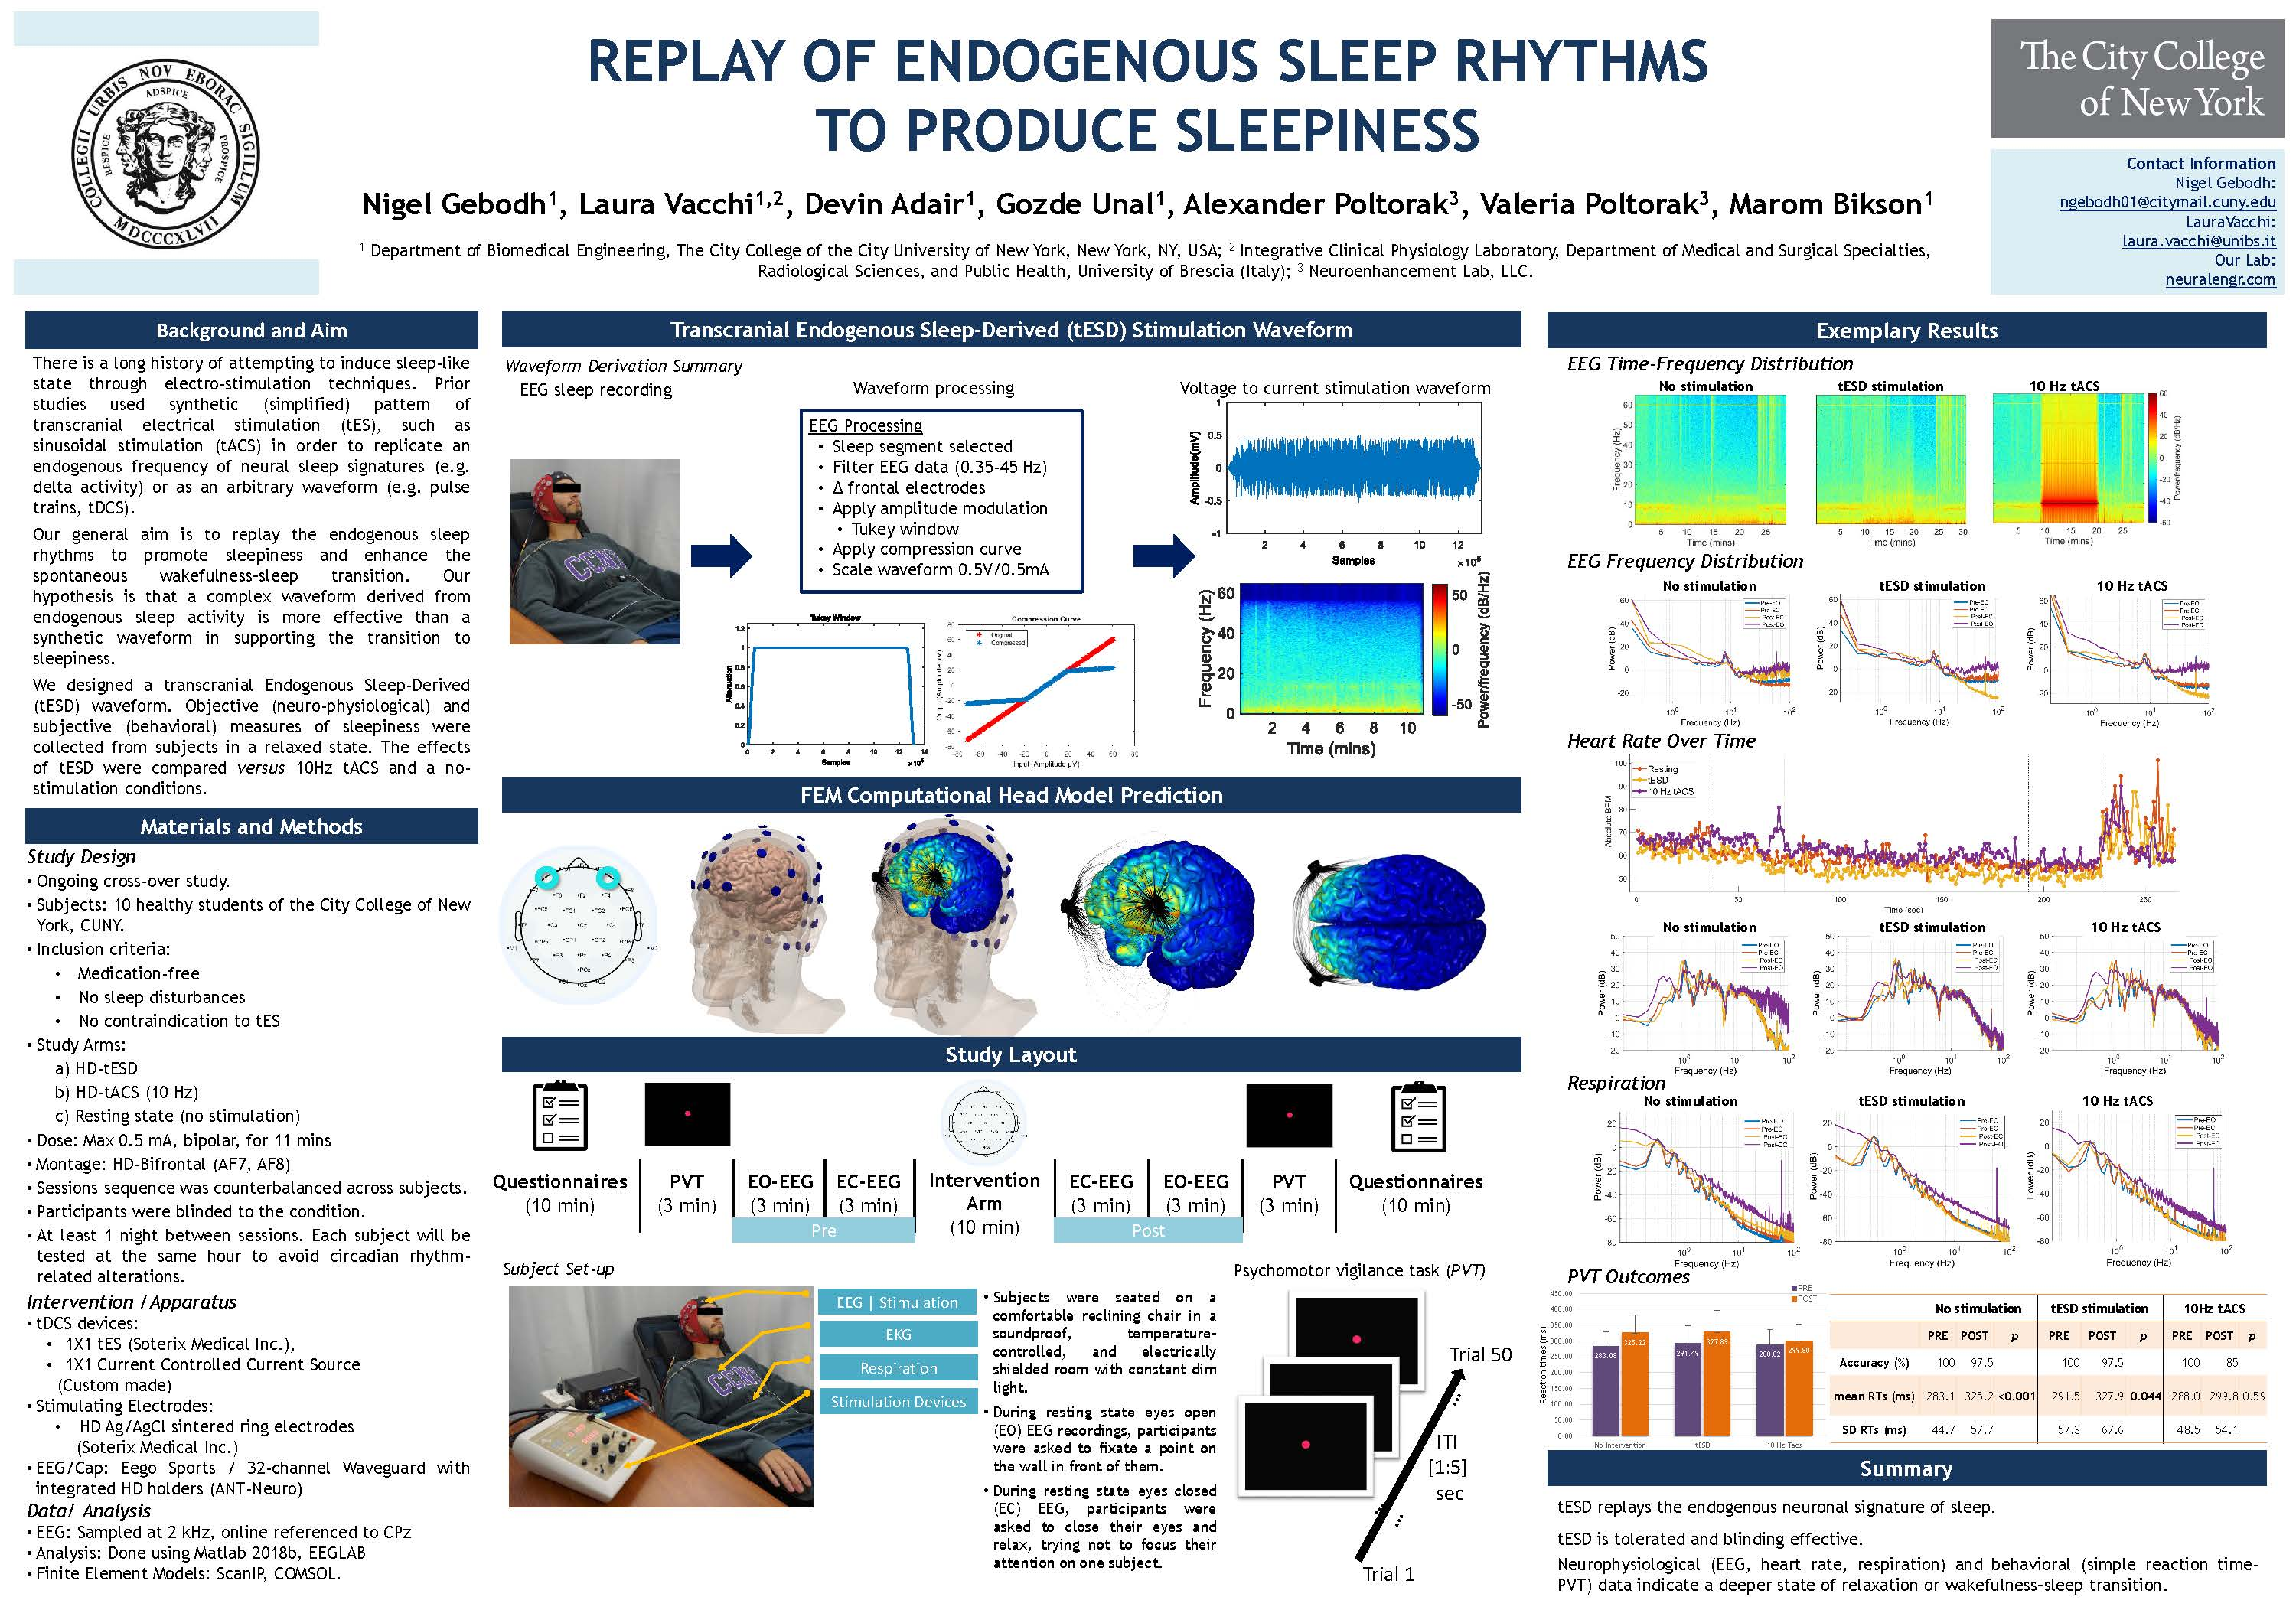 Replay of Endogenous Sleep Rhythms to Produce Sleepiness